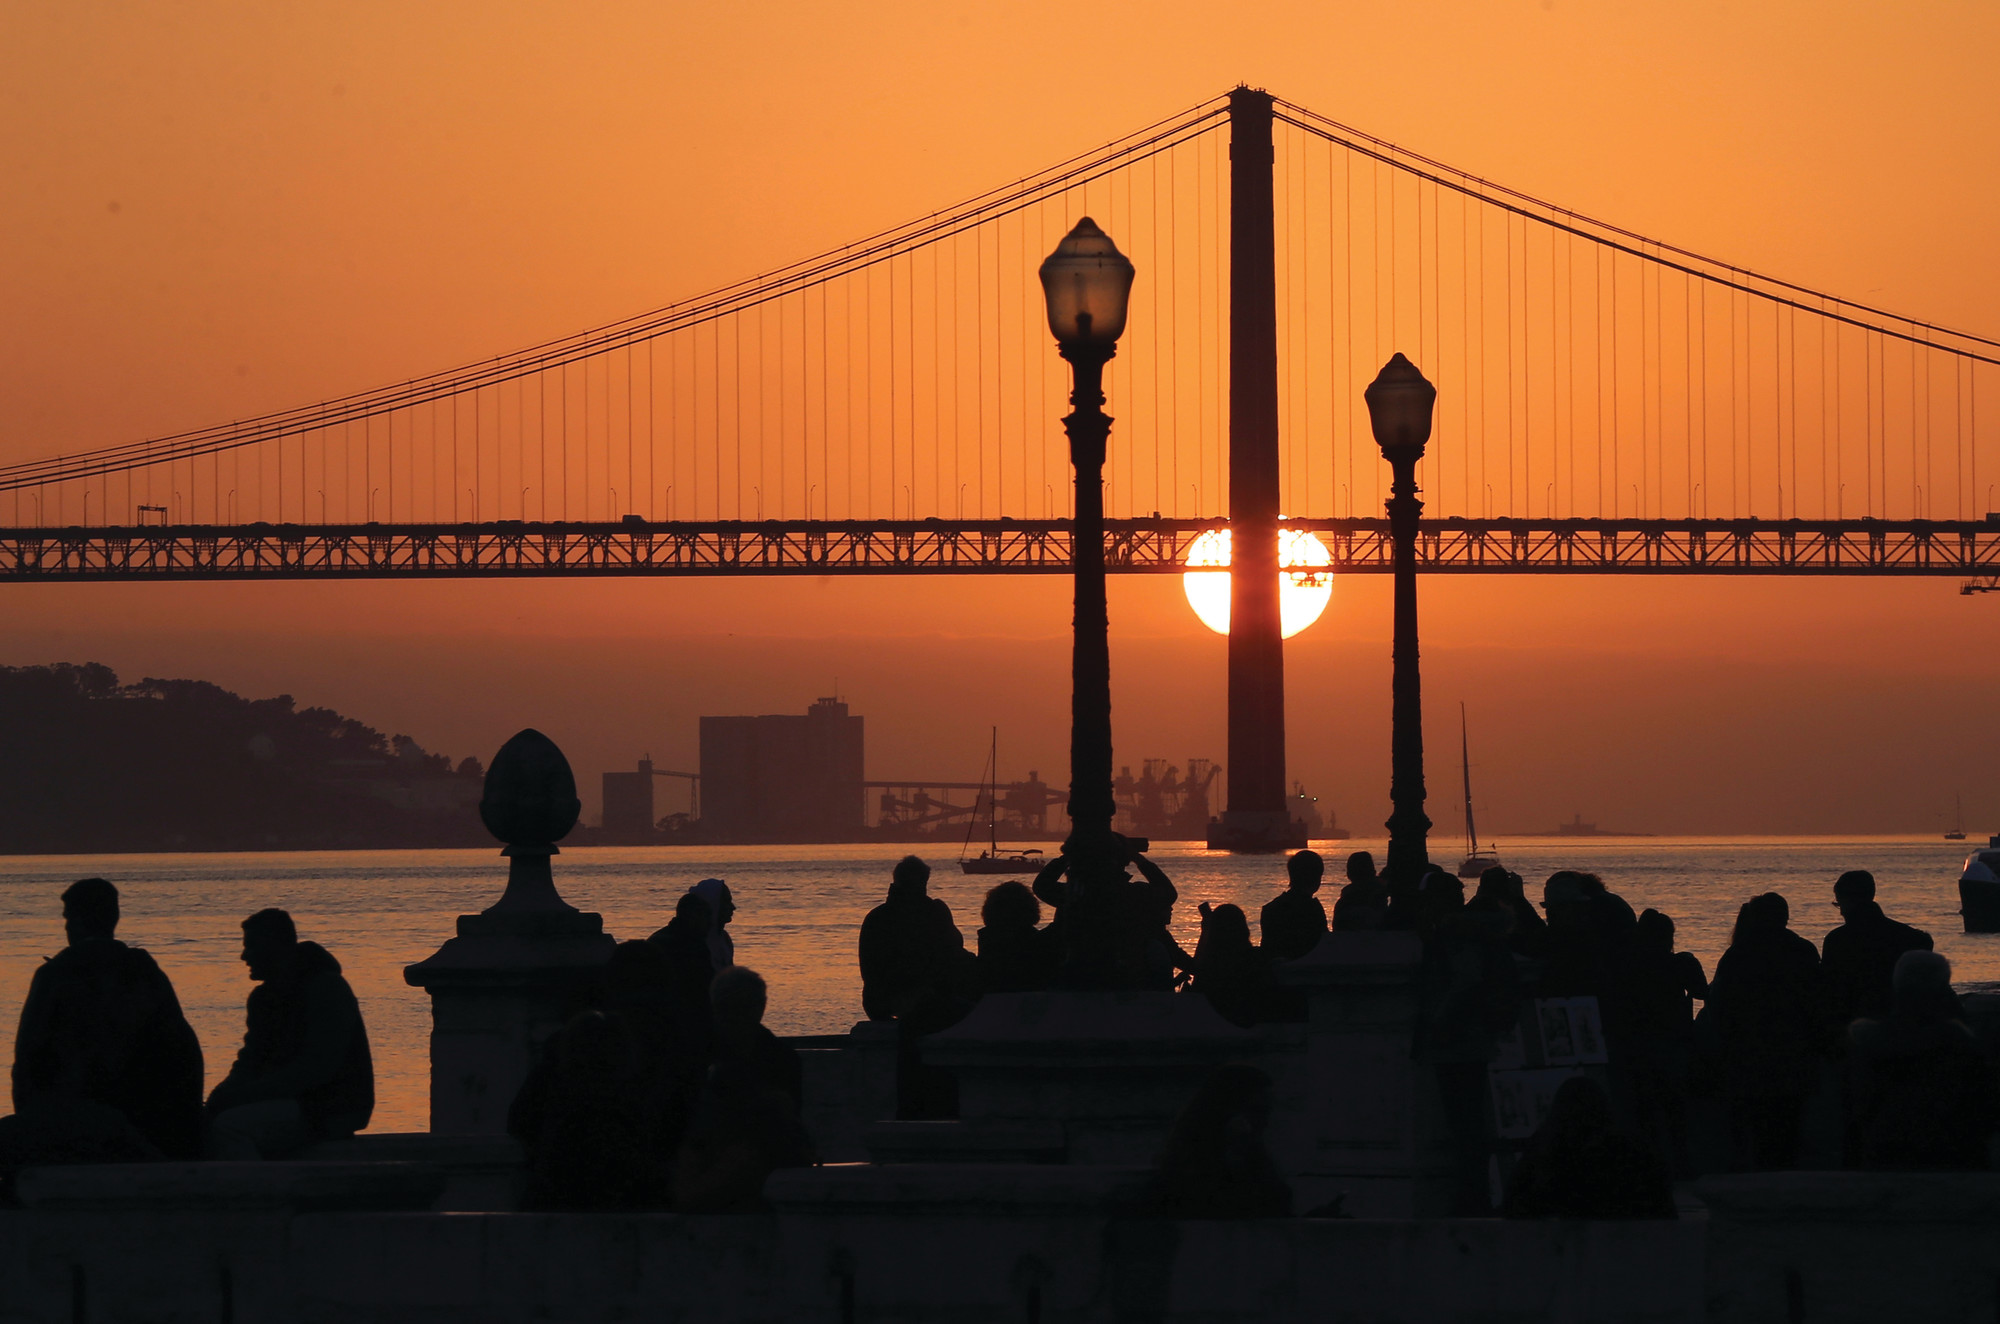 THE ASSOCIATED PRESSPeople gather at Lisbon's Comercio square to watch the sun set behind the bridge. A new tour company called Off the Grid, that asks participants put their cellphones away, is launching a trip to Lisbon in July.